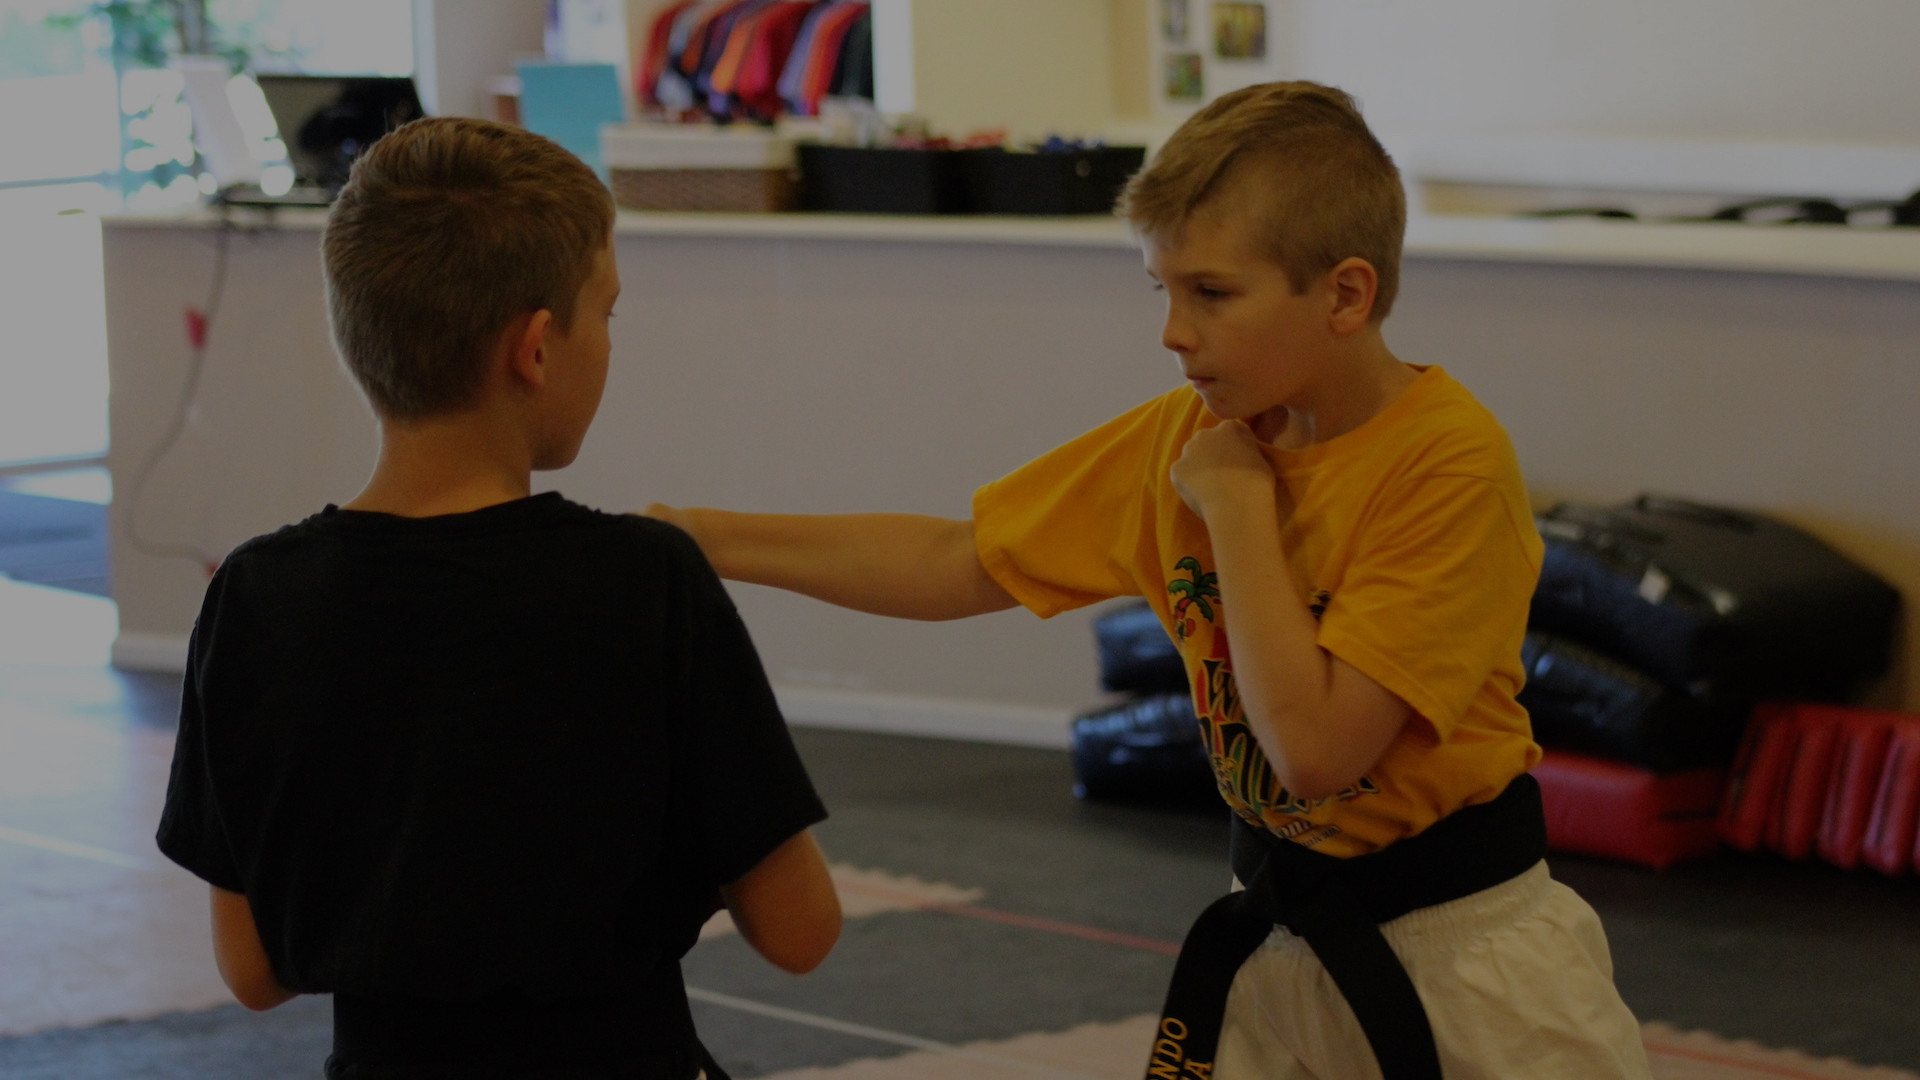 "<center><strong><span style=""color:#ffffff;"">We Are Open For In-Person Taekwondo Classes for Kids, Teens, And Adults</br>